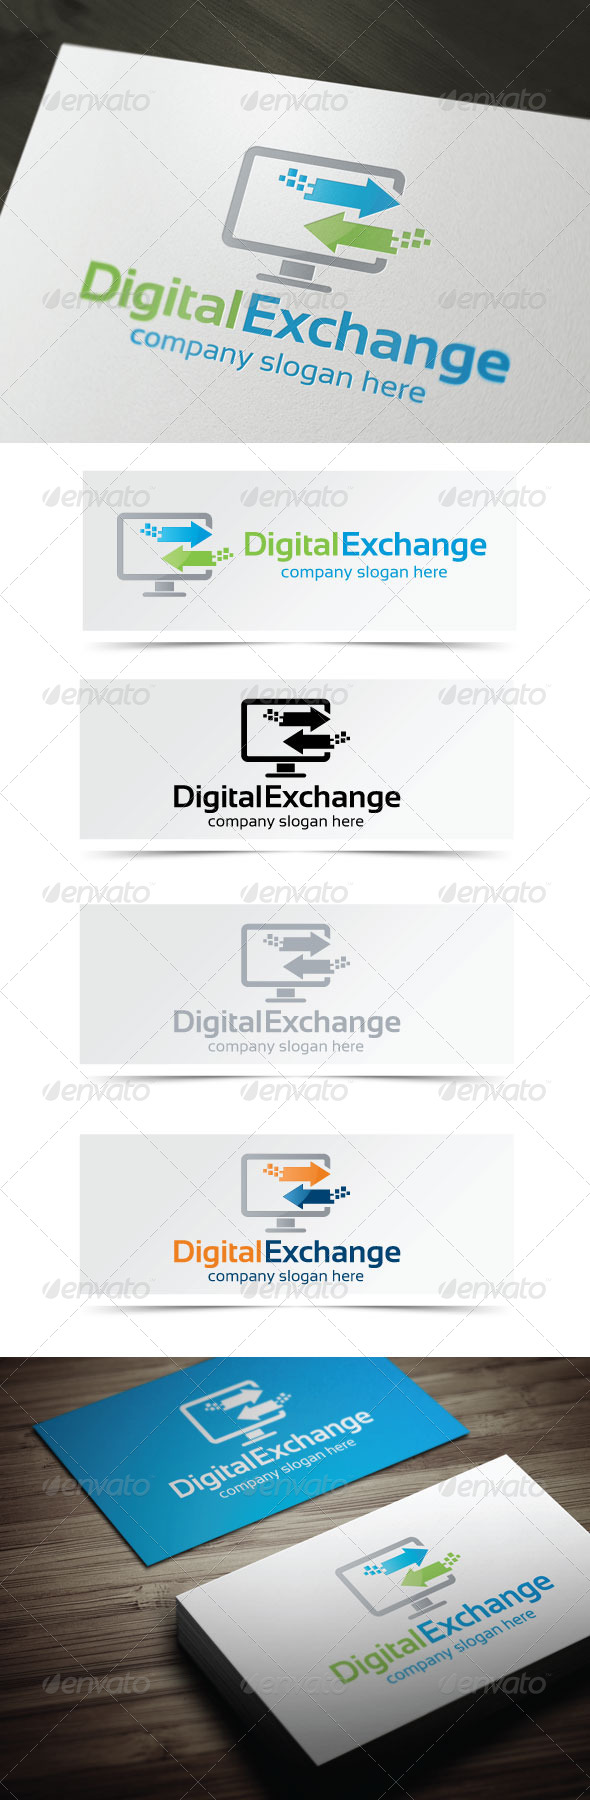 Digital Exchange - Objects Logo Templates